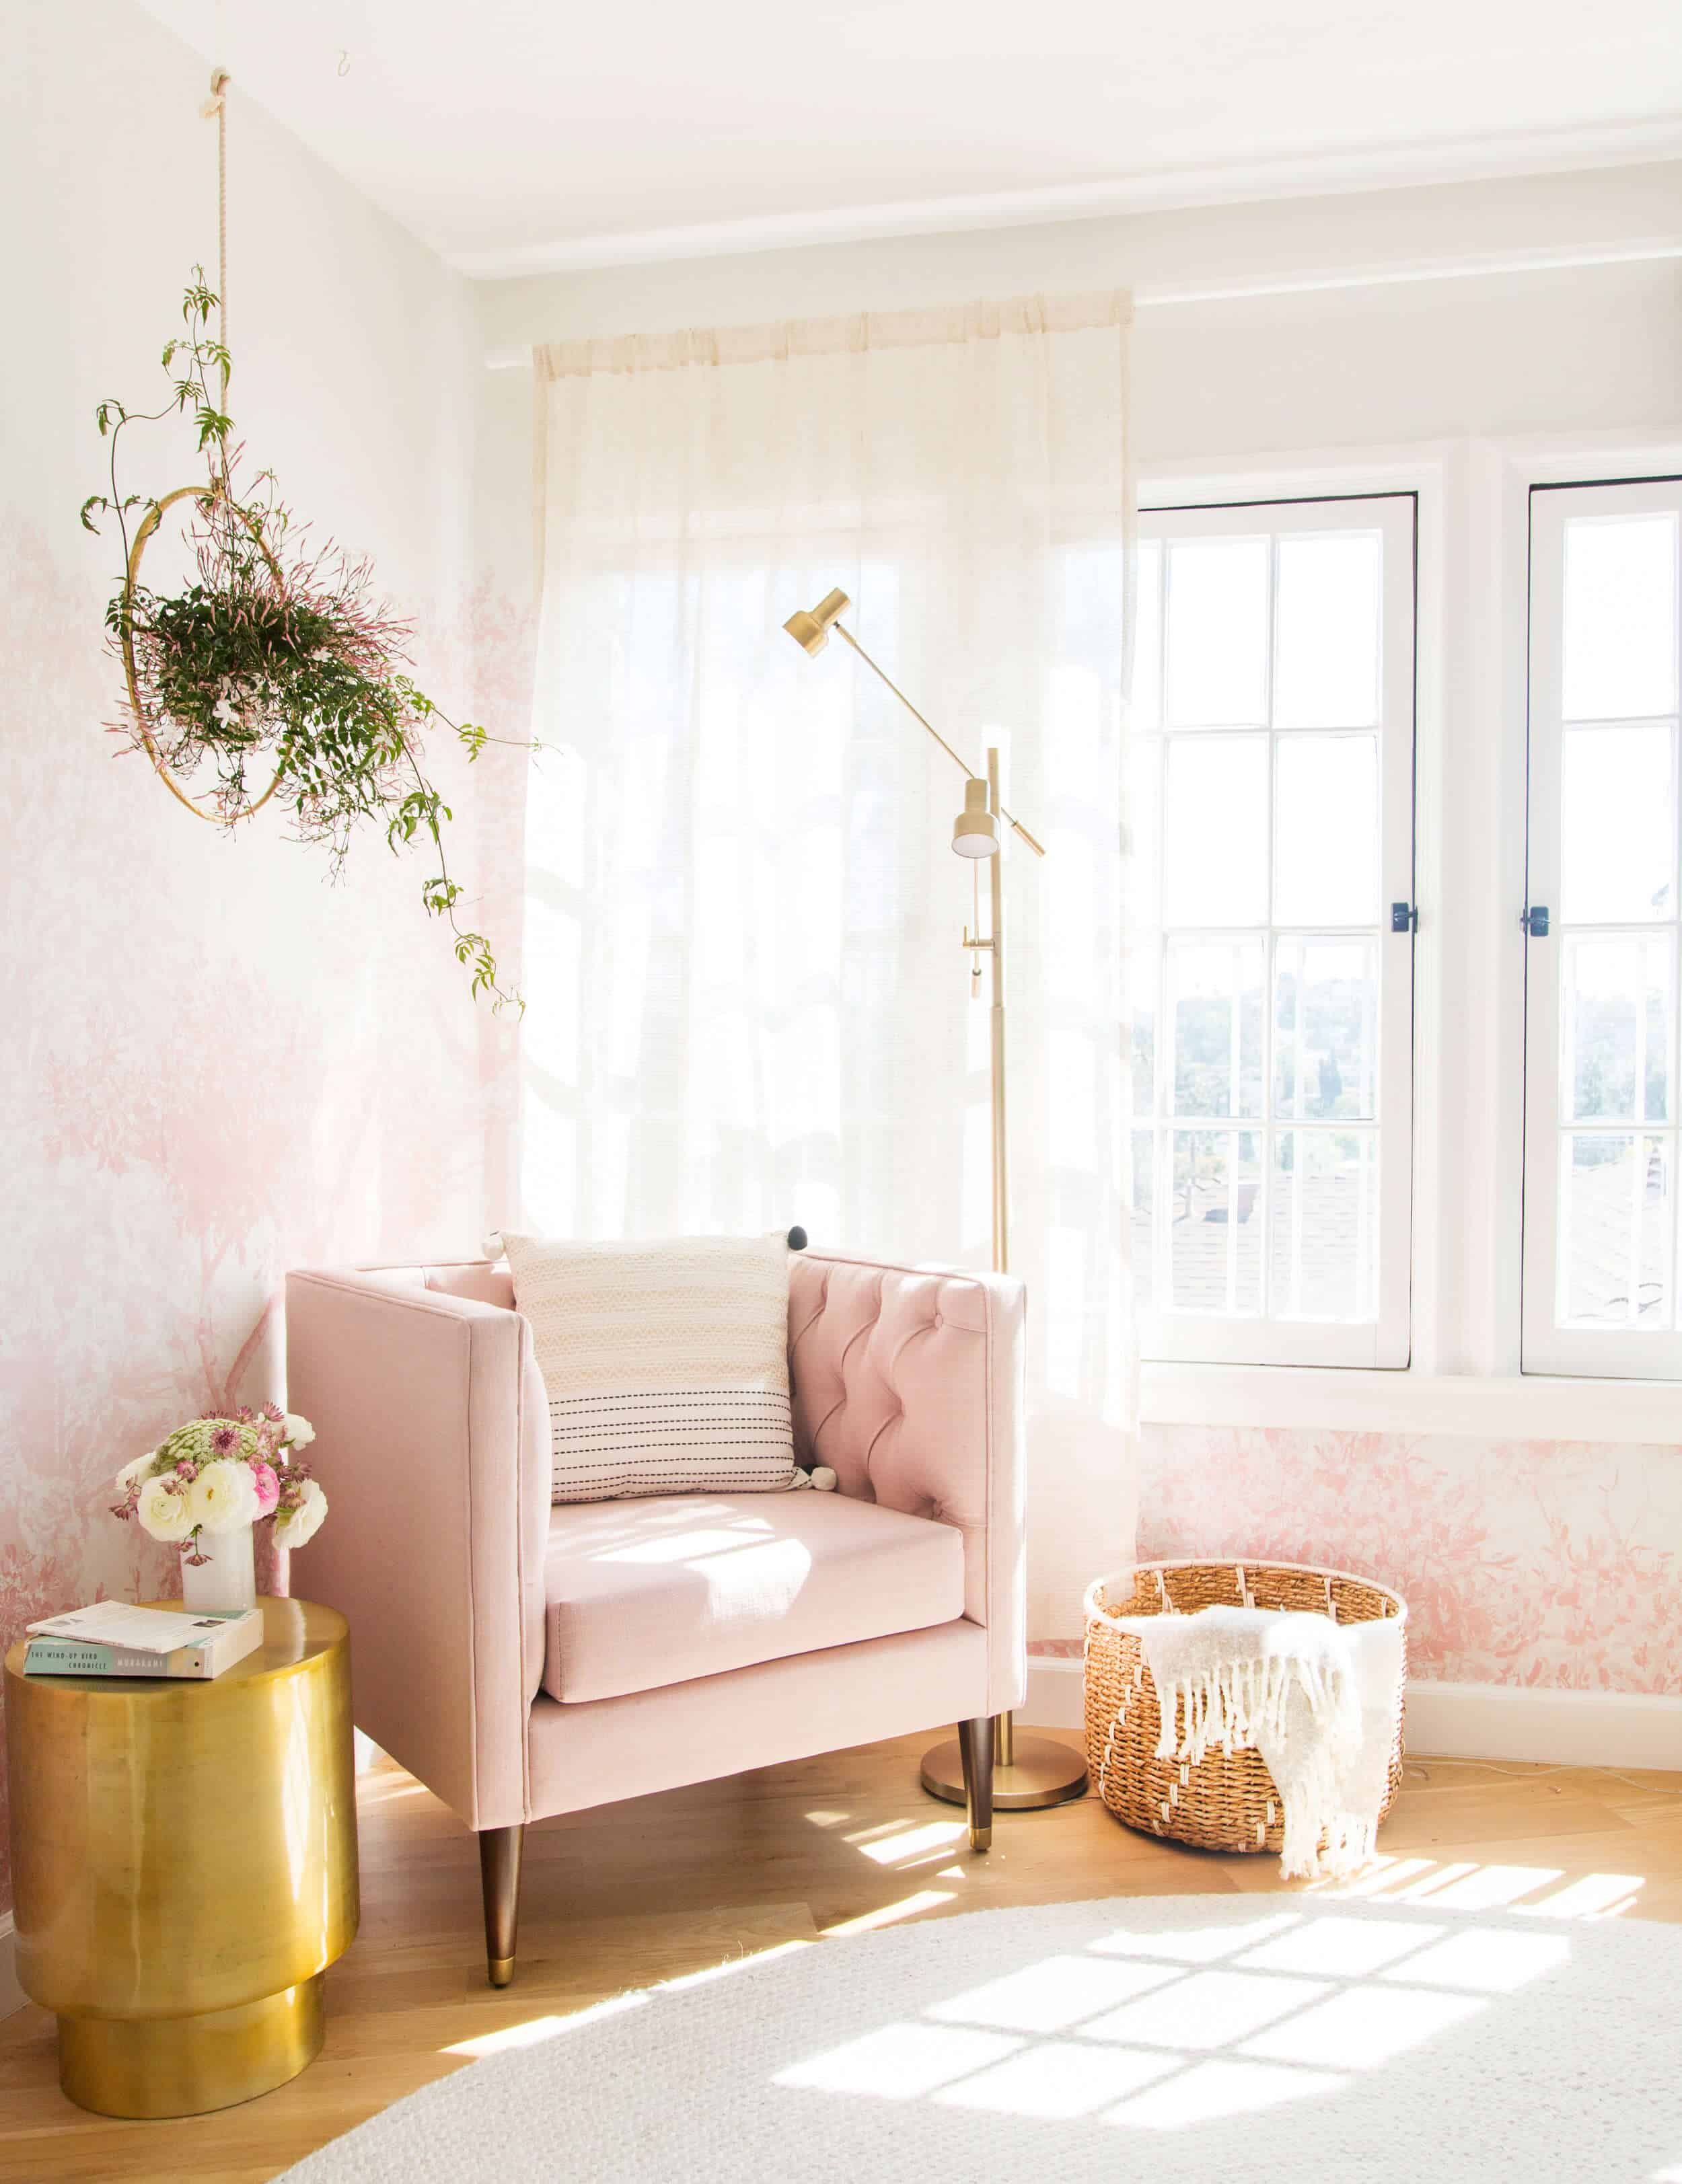 Emily-Henderson_Target_Global_Lux-and-Glam_Bedroom_13